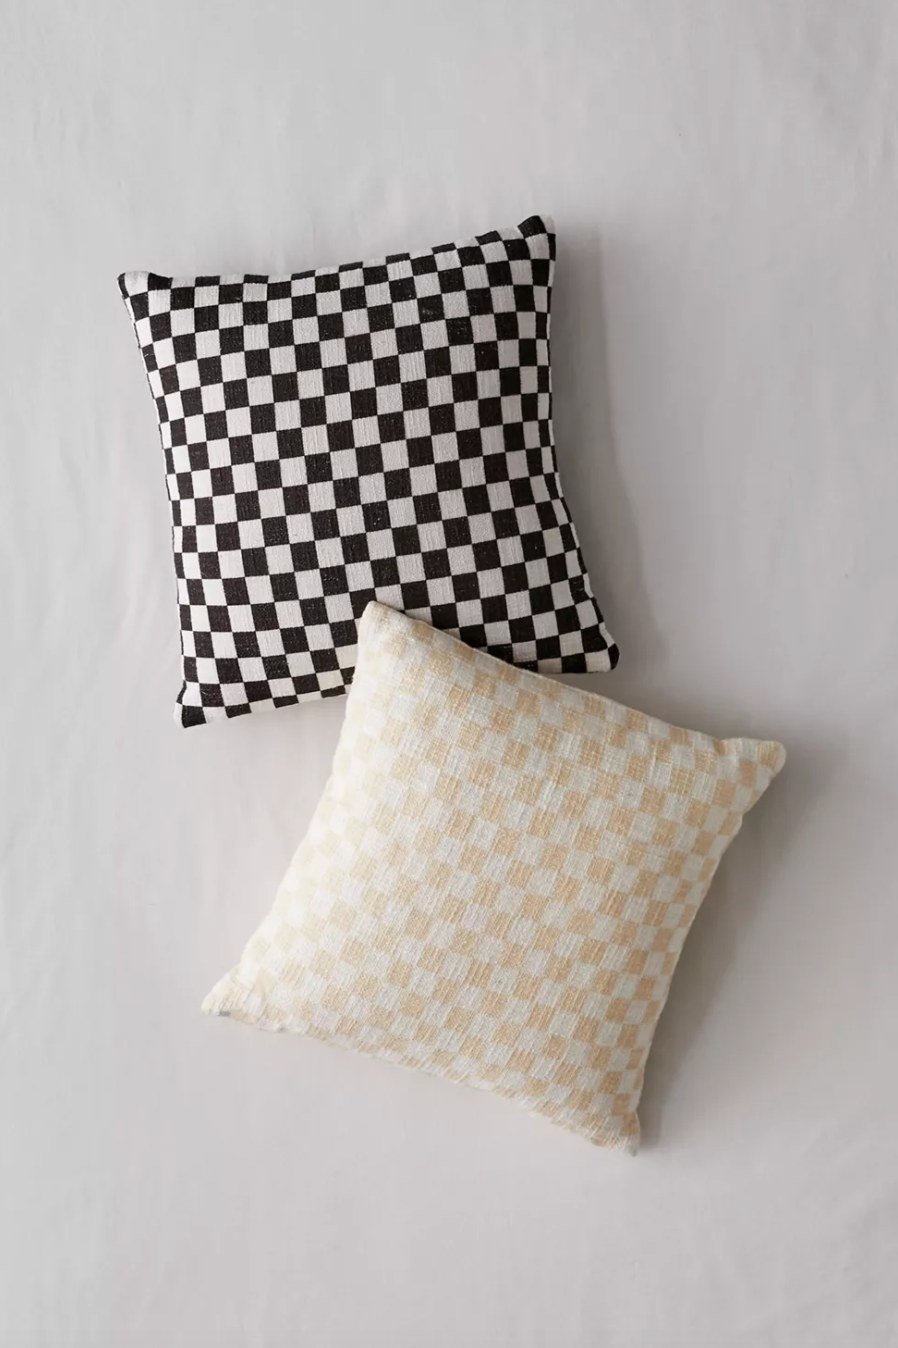 the checkerboard throw pillows in black and taupe